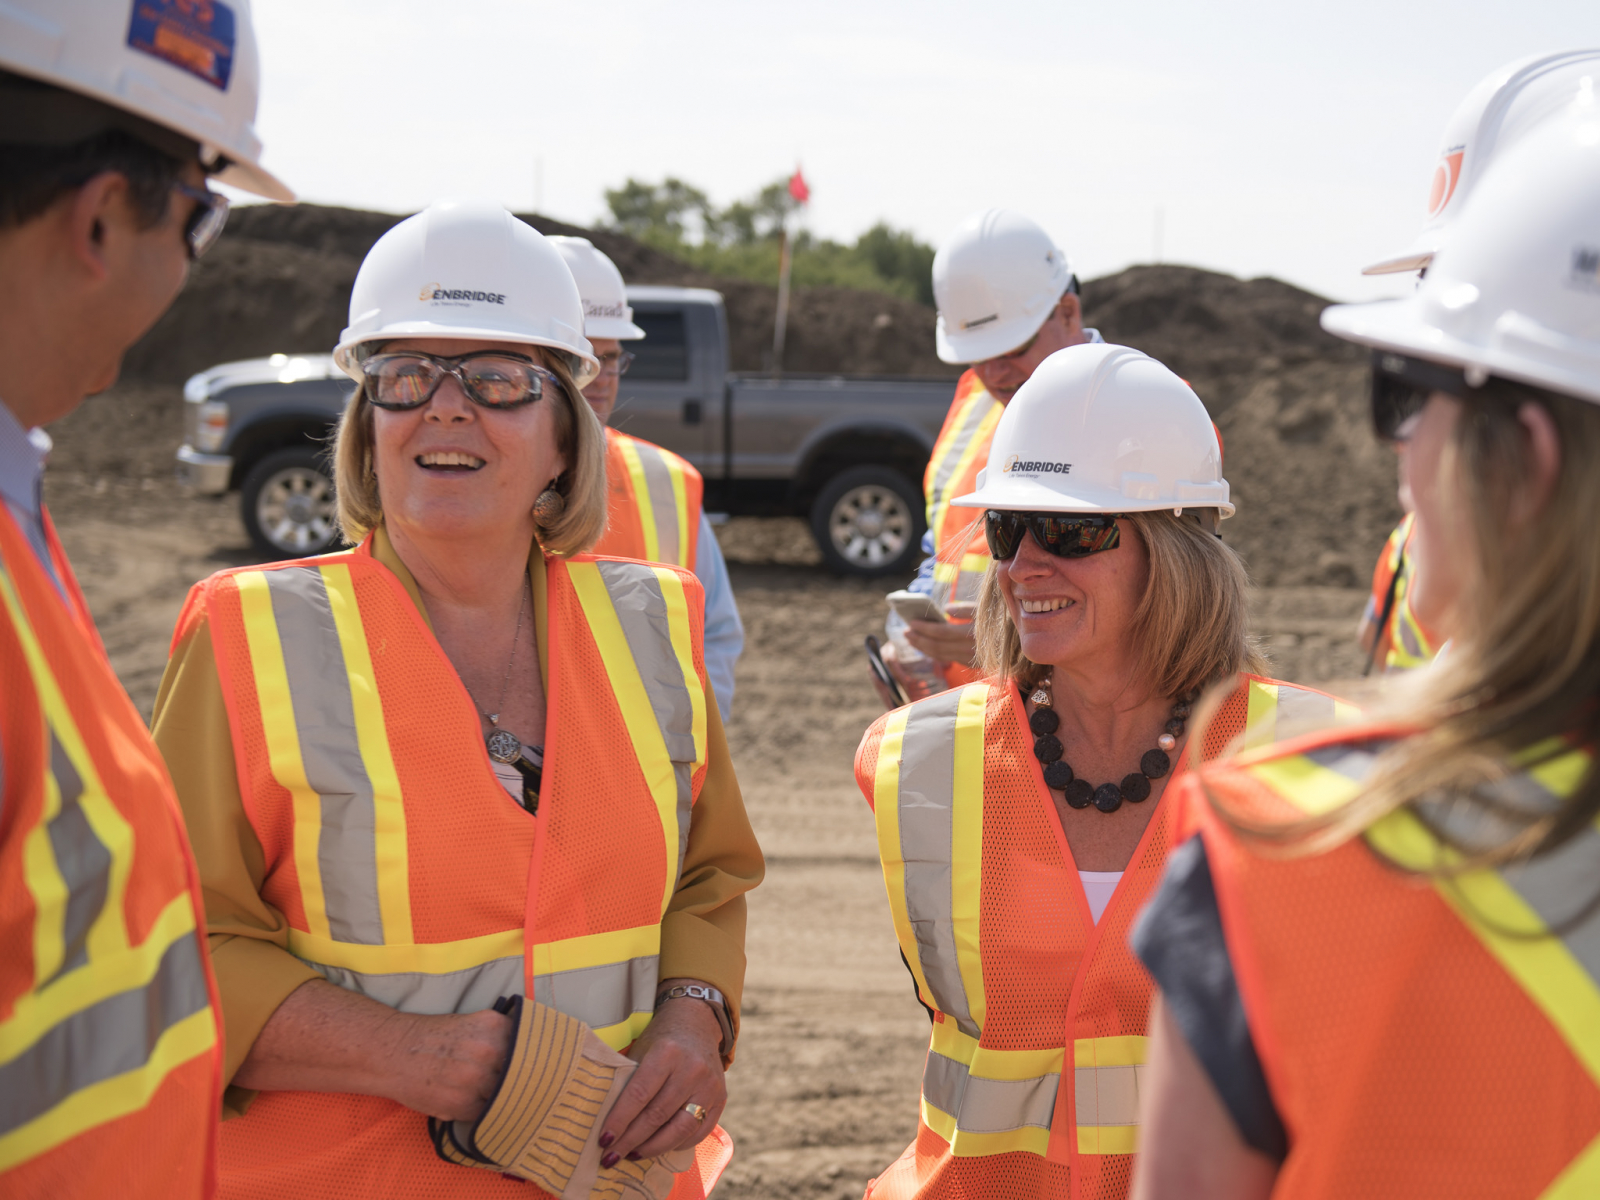 Alberta Energy Minister Margaret McCuaig-Boyd (left) and Premier Rachel Notley tour Enbridge's Line 3 pipeline replacement site at Hardisty, Alta. on Aug. 10, 2017.